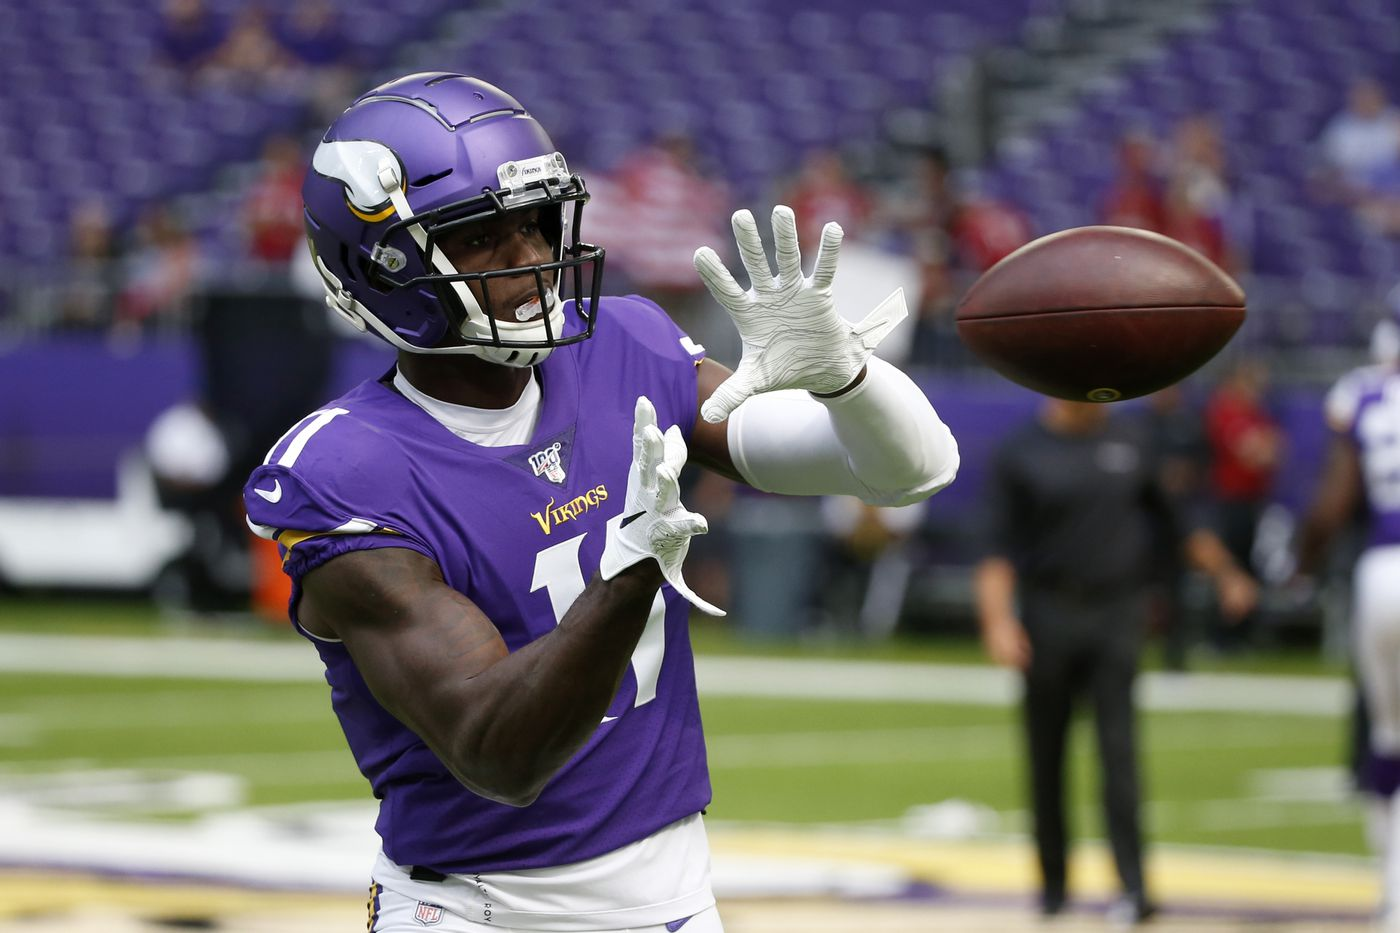 Vikings wide receiver clipart vector library stock Detroit Lions reportedly work out former first-round WR ... vector library stock